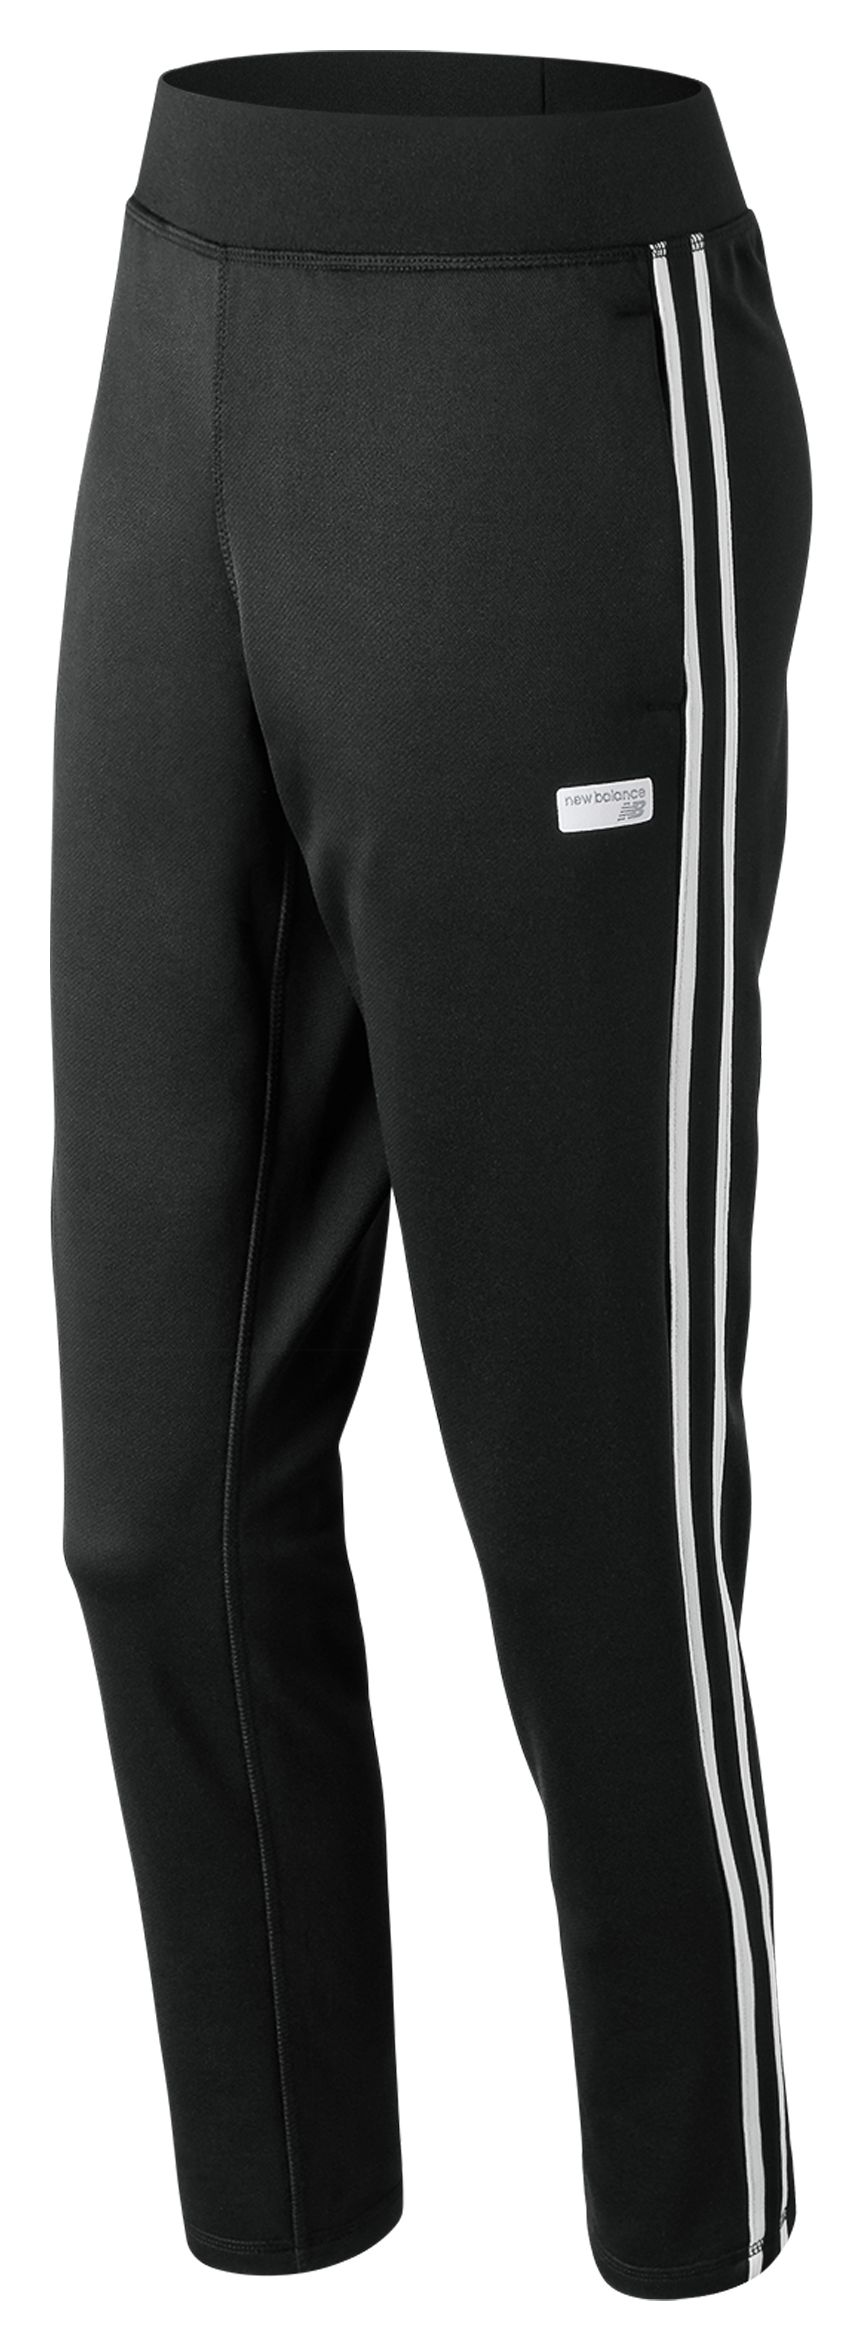 *Markdown*  Women's NB Athletics Track Pant